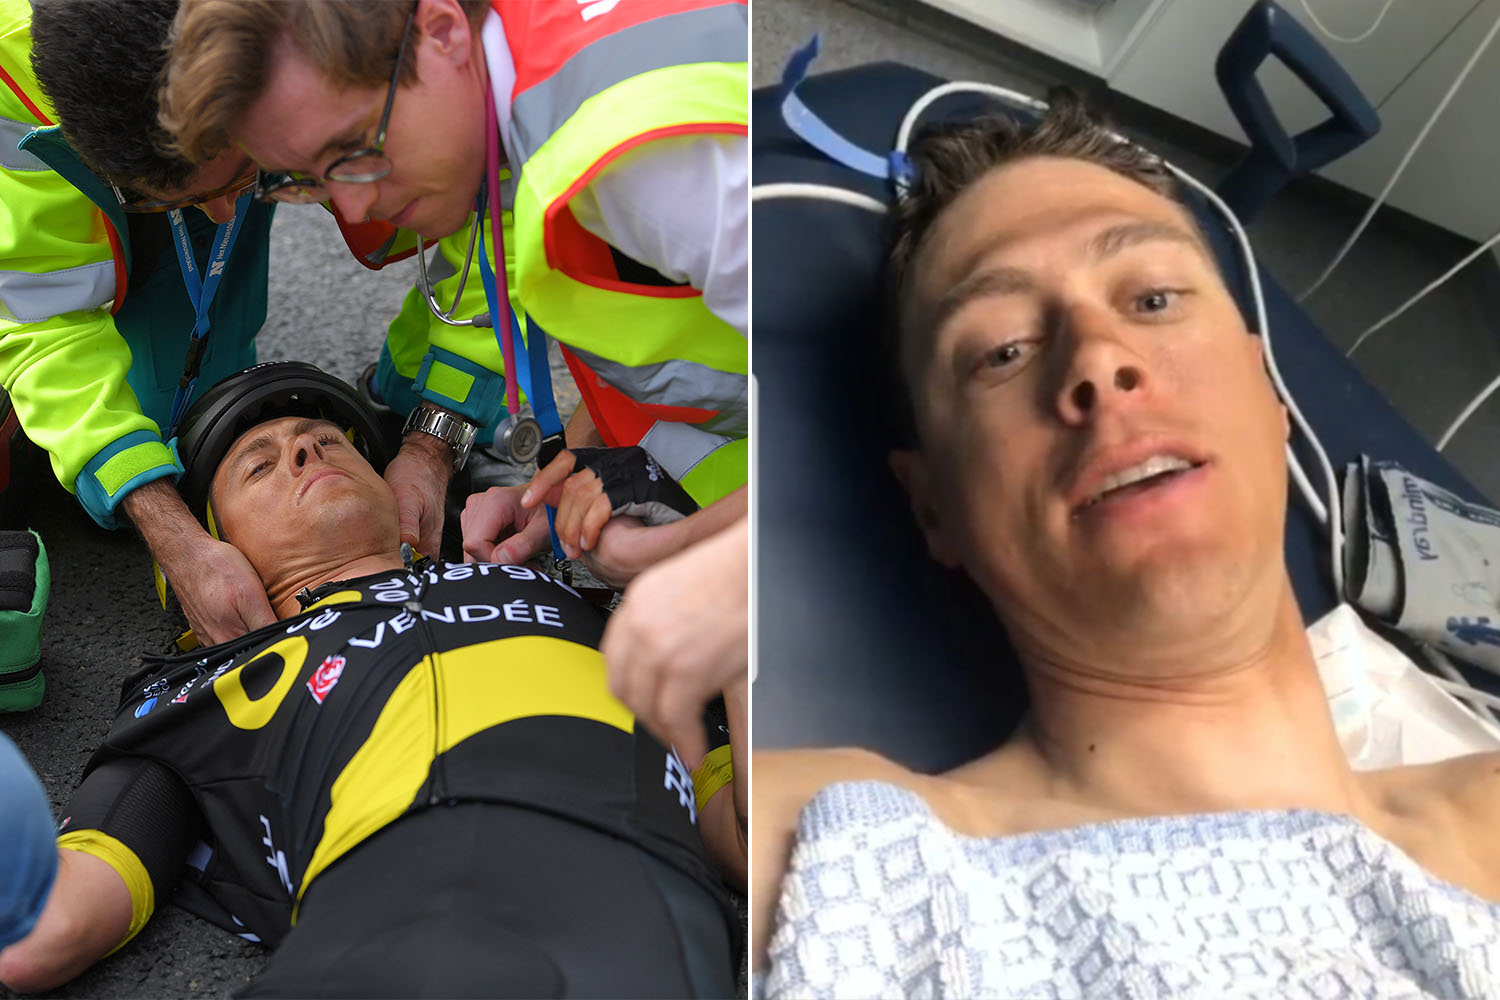 Niki Terpstra will miss Paris Roubaix after suffering 'severe concussion' in Tour of Flanders crash